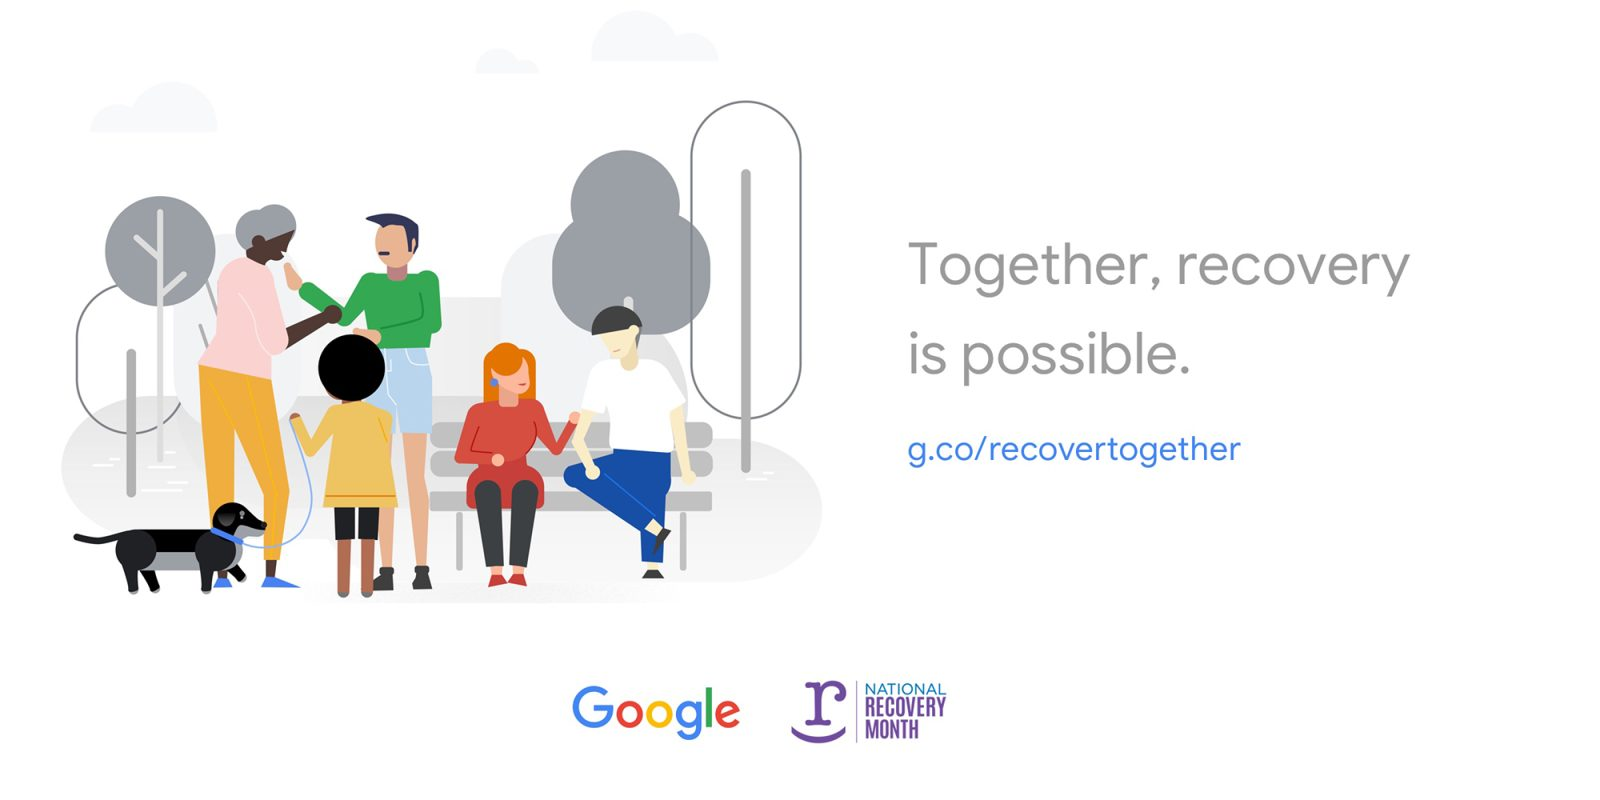 Google launches 'Recover Together' site ahead of National Recovery Month